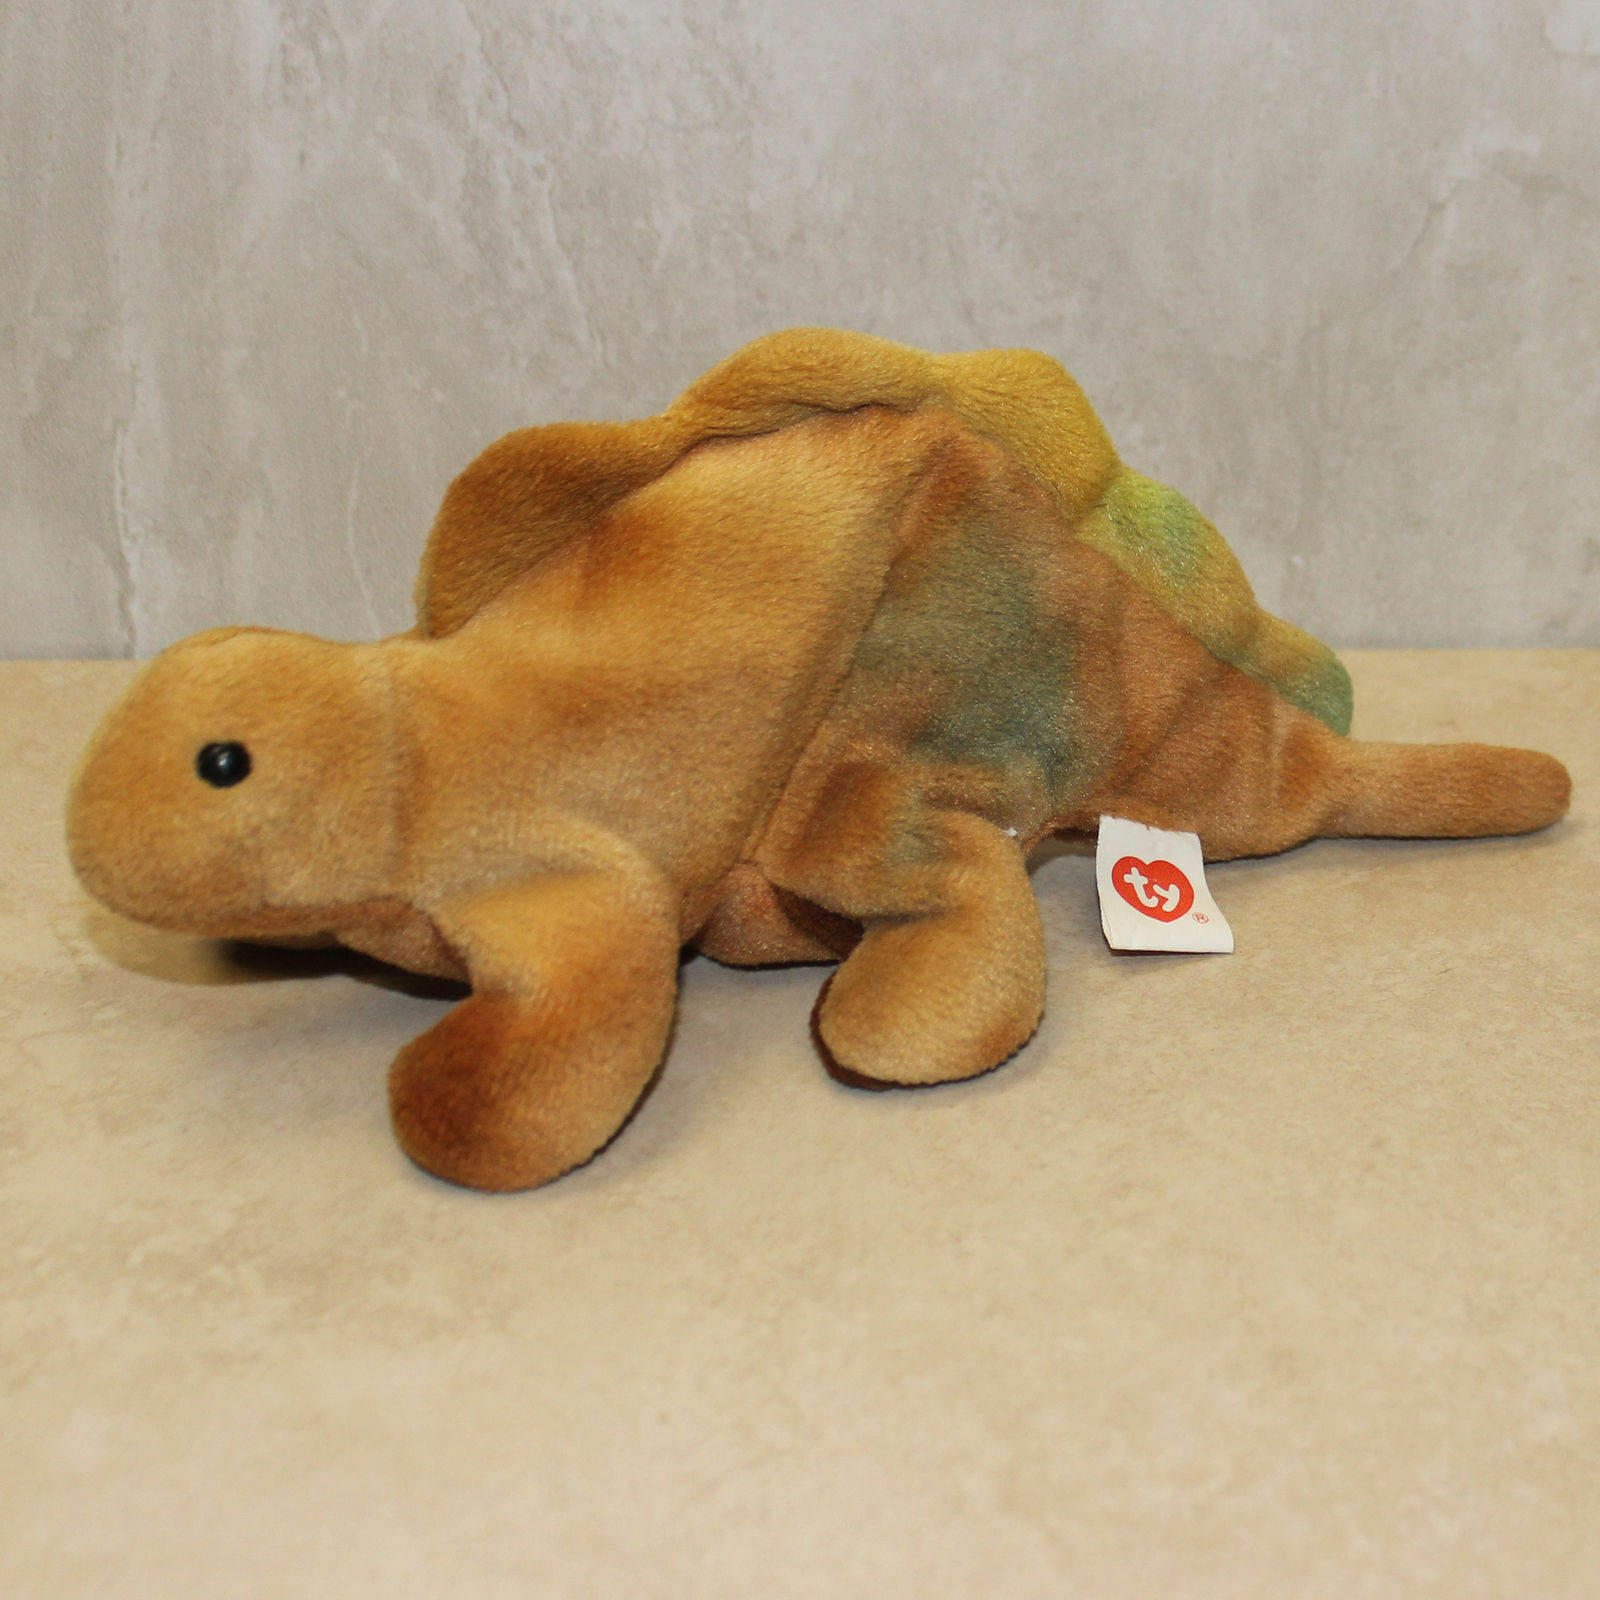 Steg ( Dinosaur ) - NO HANG TAG - 1st or 2nd gen tush Ty Beanie Baby (SP)